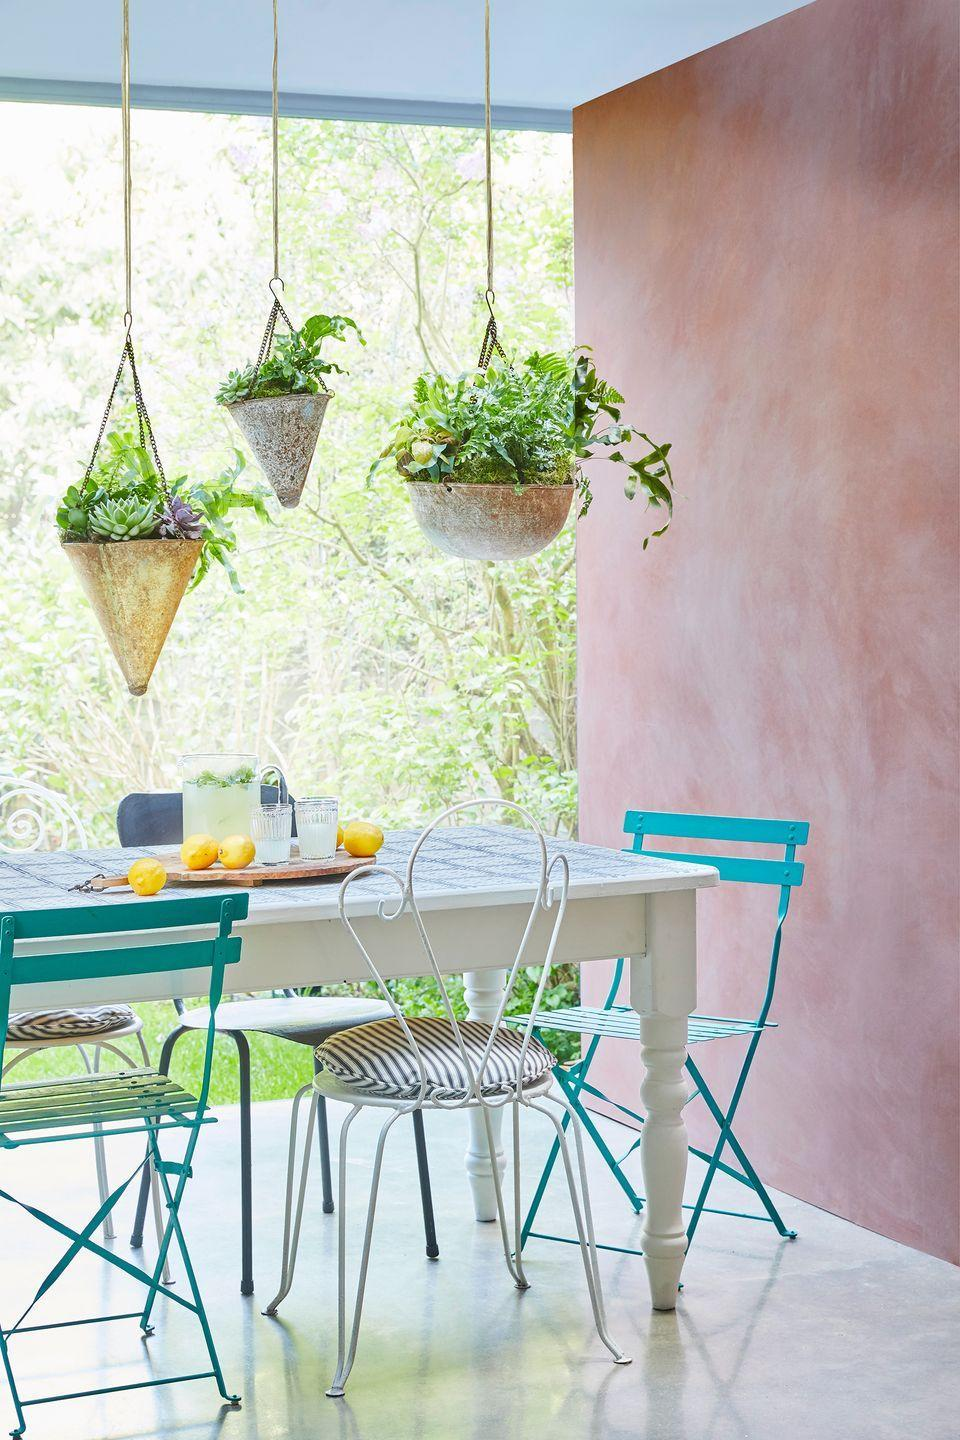 <p>Patios and porches look beautiful with a pop of color, and since they're exposed to the outdoors, they look beautiful with a more distressed finish or treatment. This sweet patio features a plaster effect wall painted with Chalk Paint® in Scandinavian Pink and Paloma. Add hanging plants for some greenery overhead. </p>